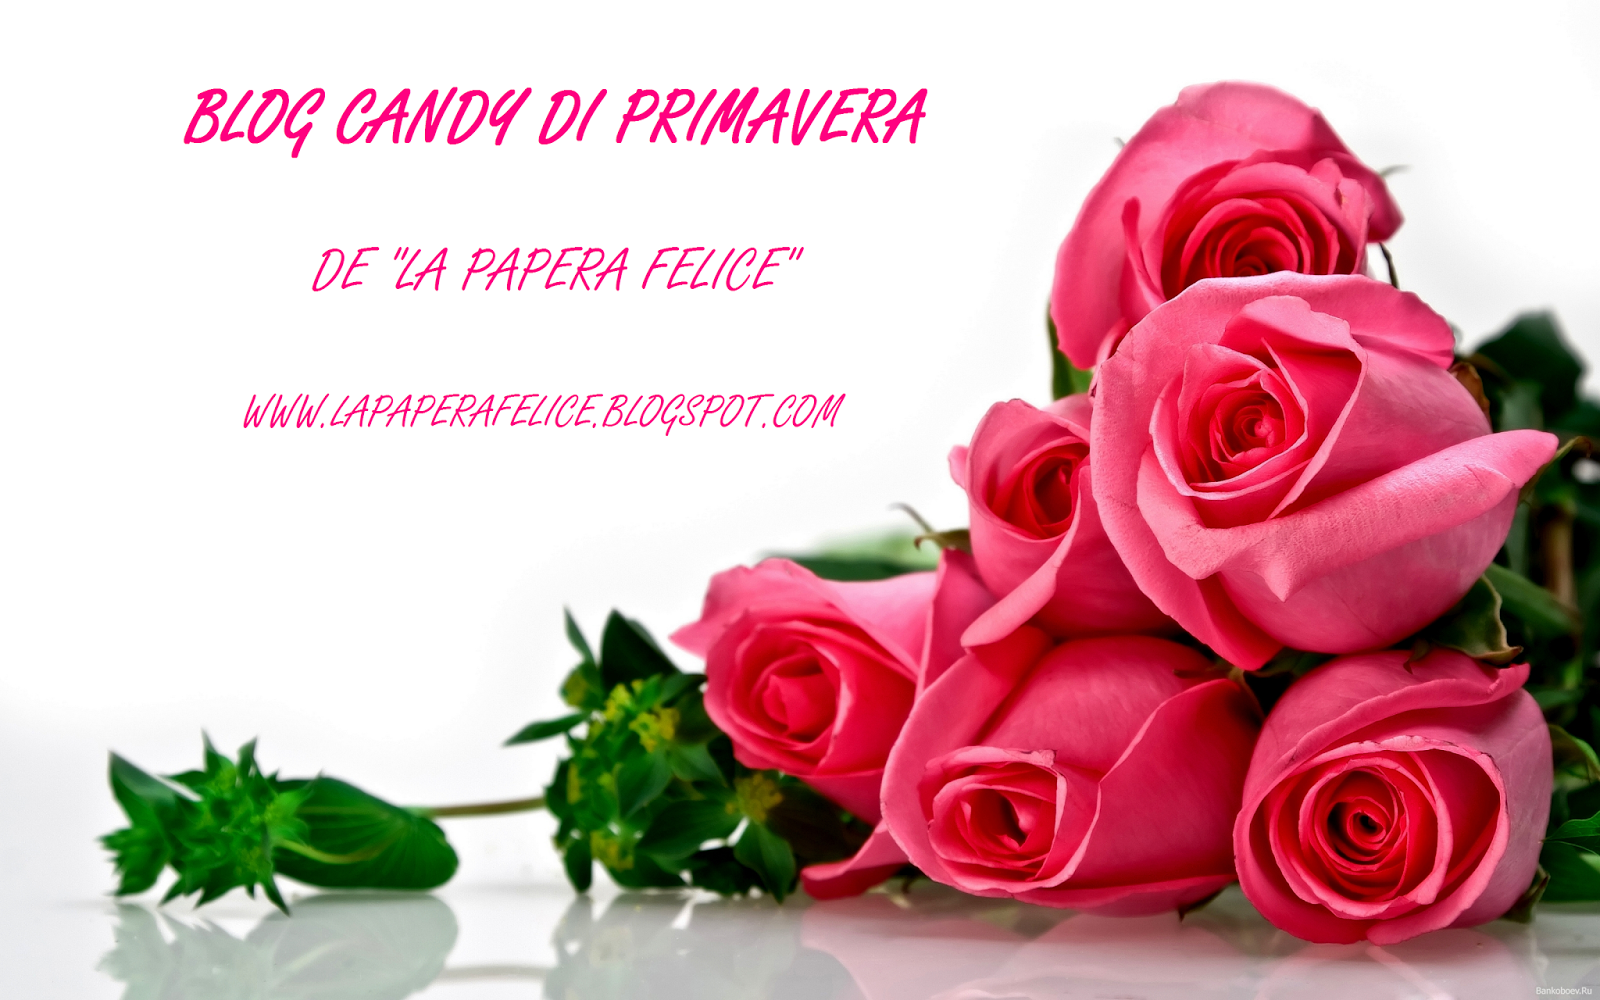 blog candy di primavera